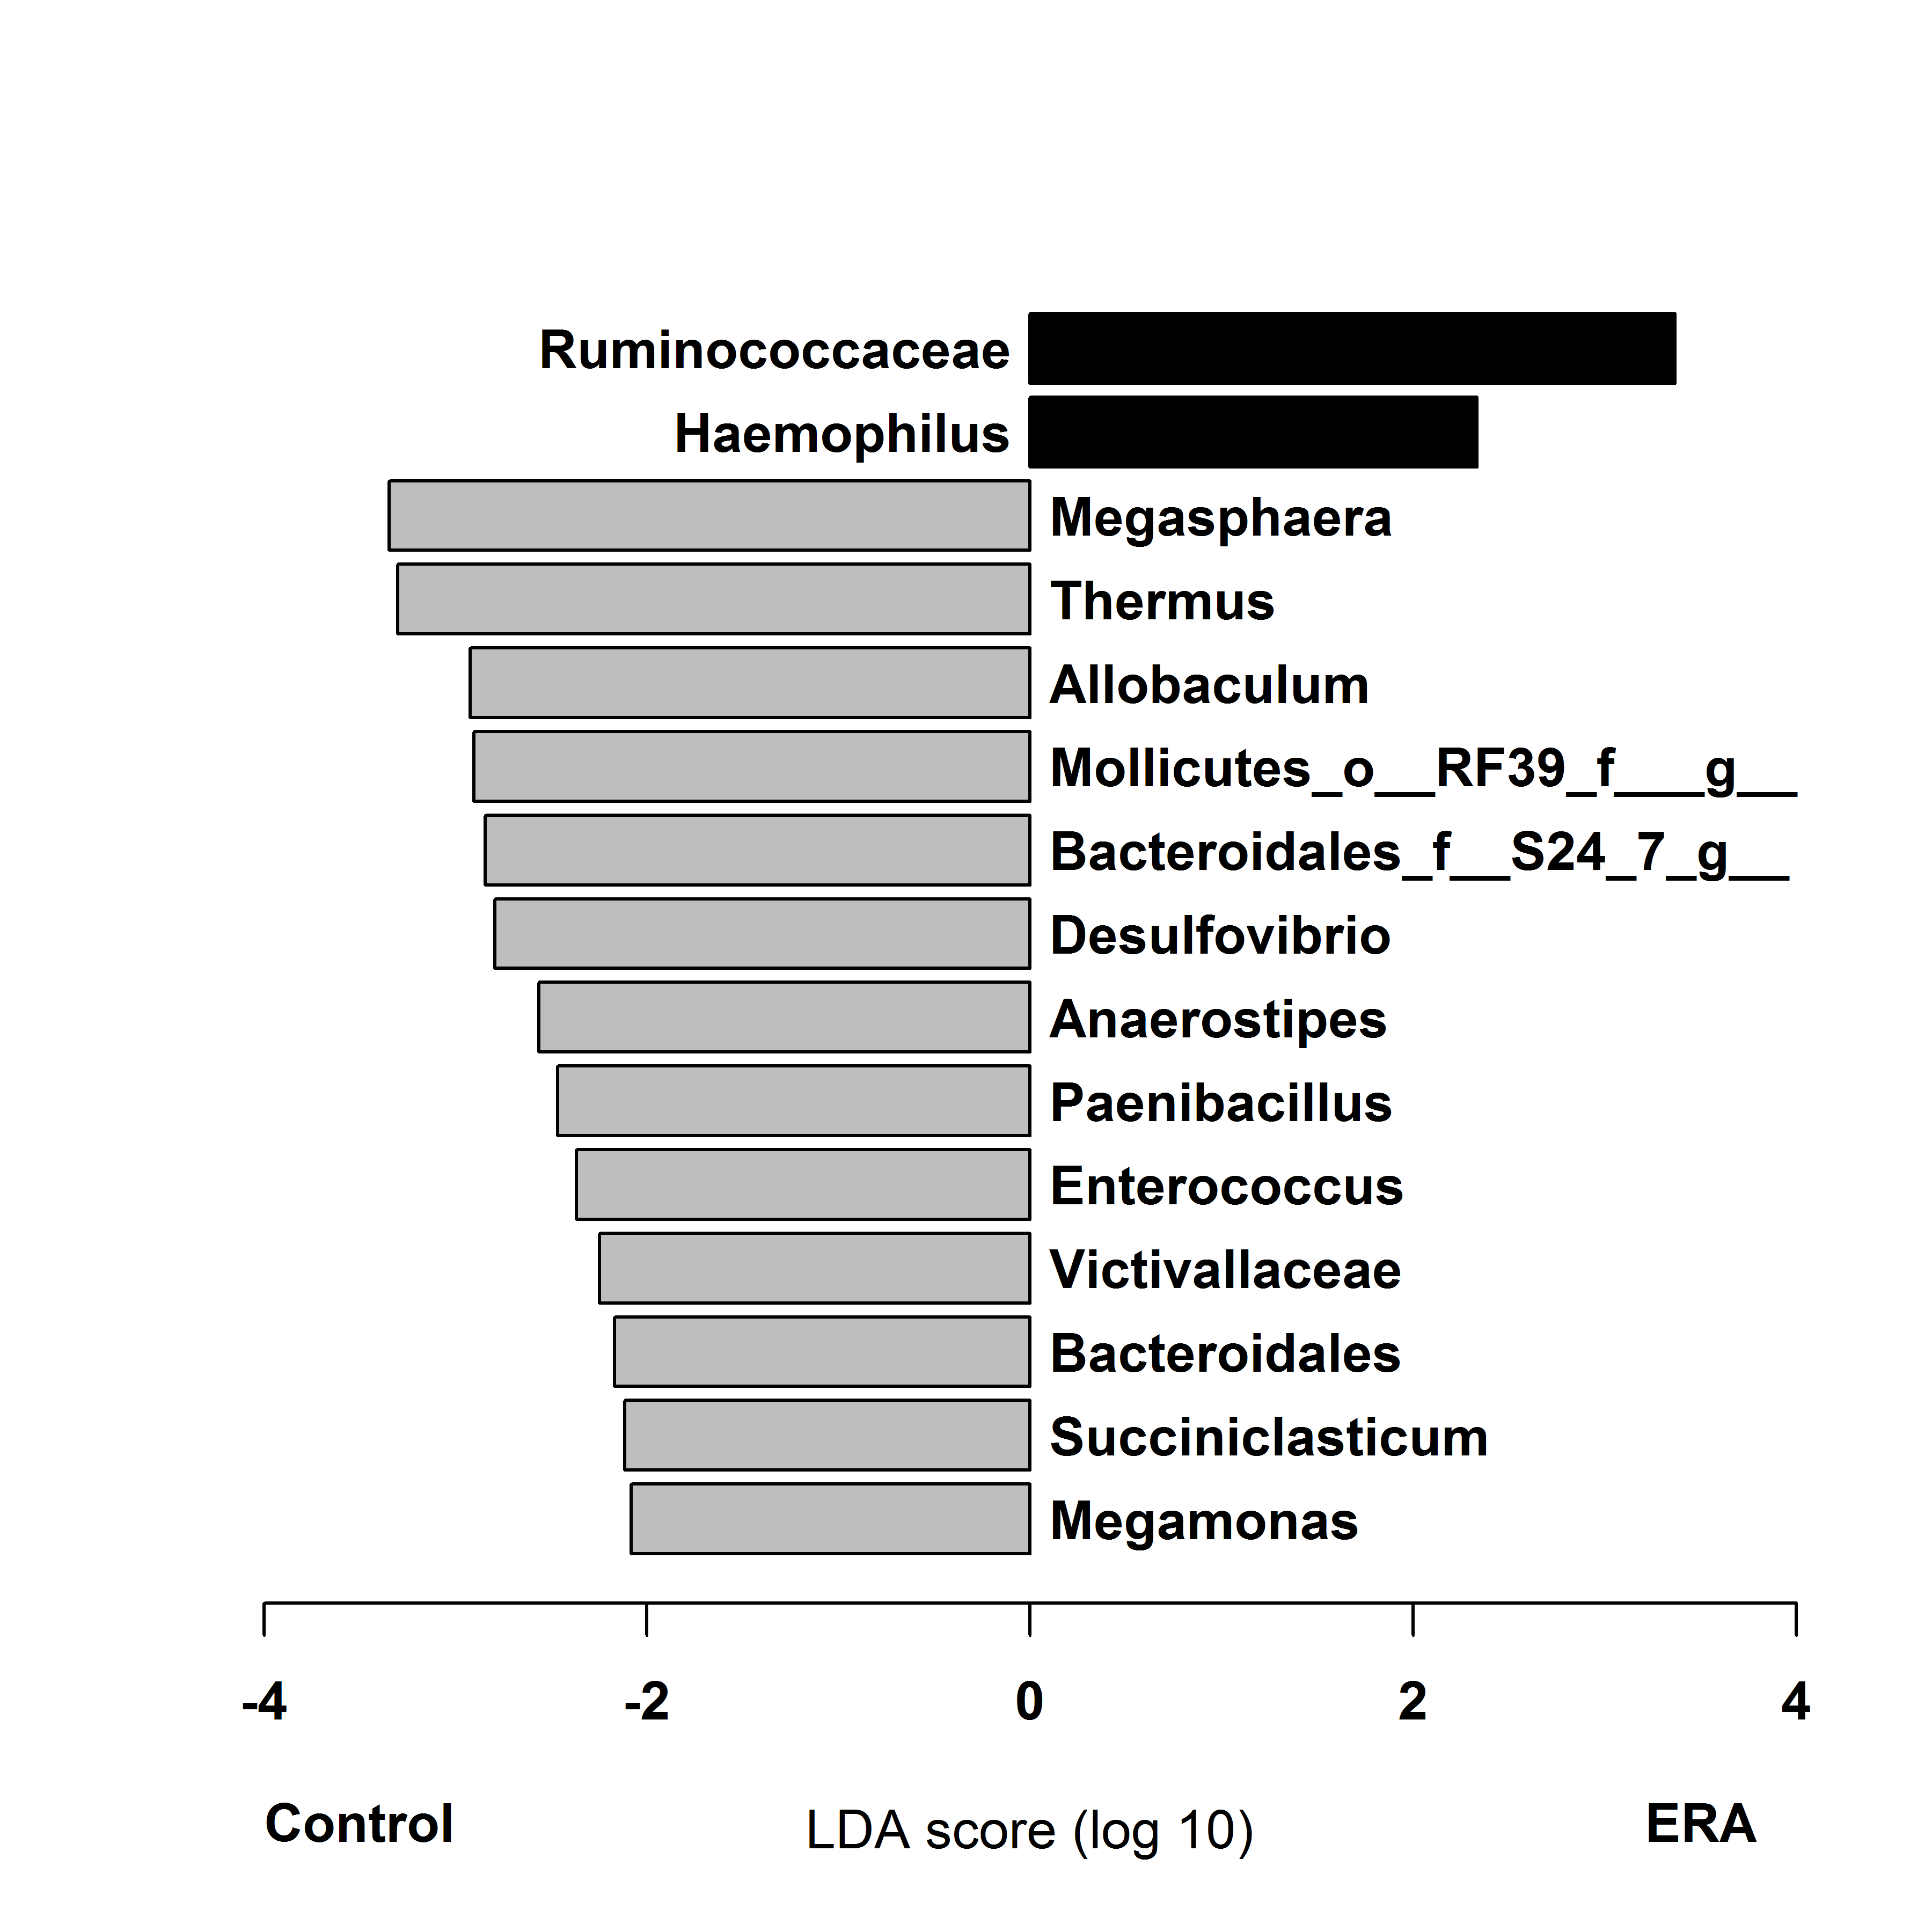 Figure 2. LEfSe output on taxonomic data (genus level). Taxa more common in ERA subjects are shown in black, controls in gray.